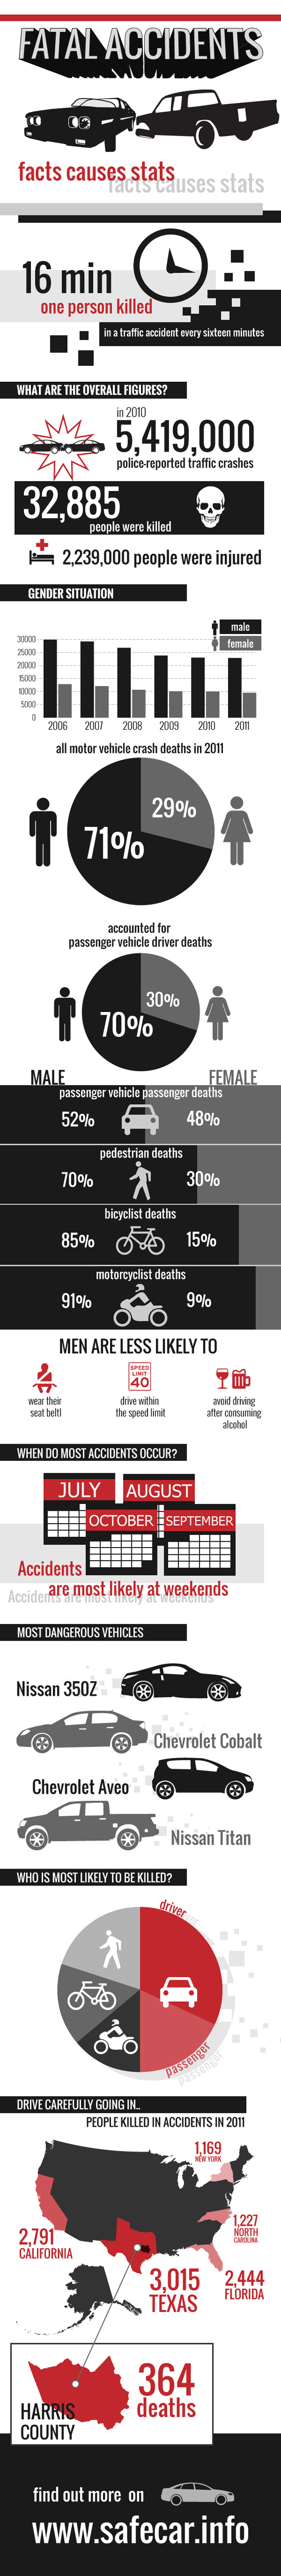 Fatal-Accidents-Infographic